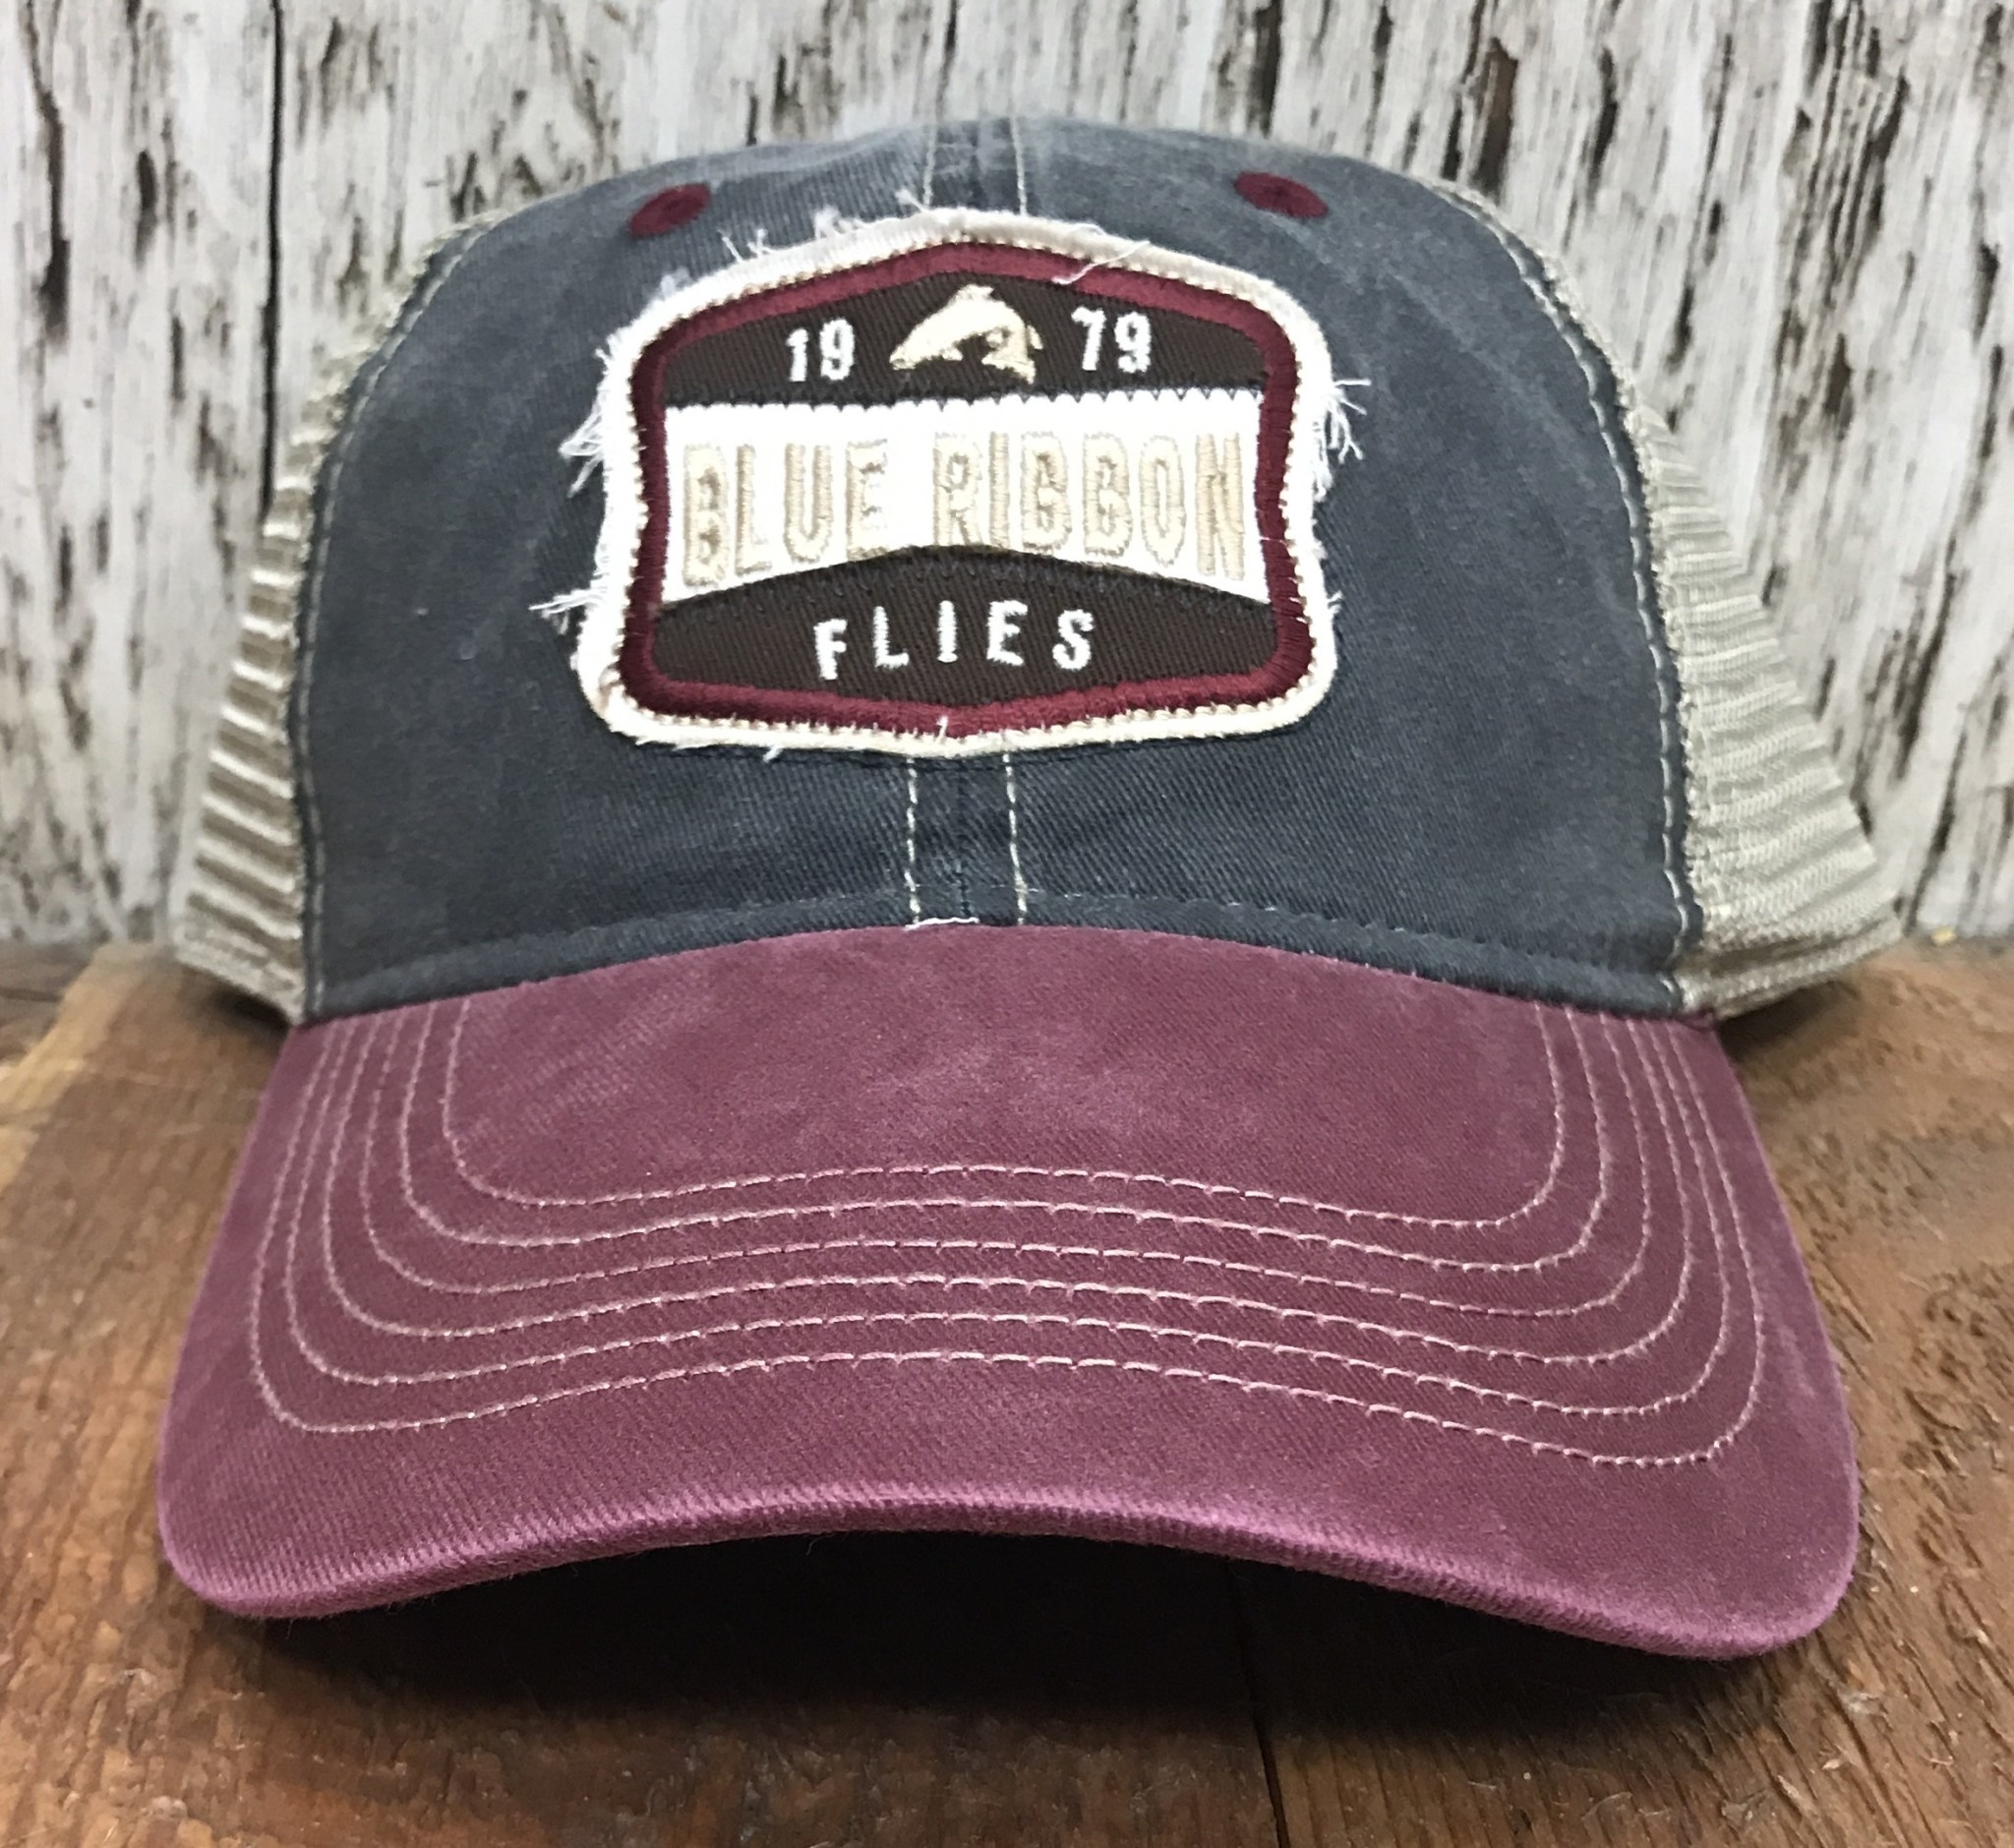 BRF Legend Mesh Cap - Maroon/Navy/Tan